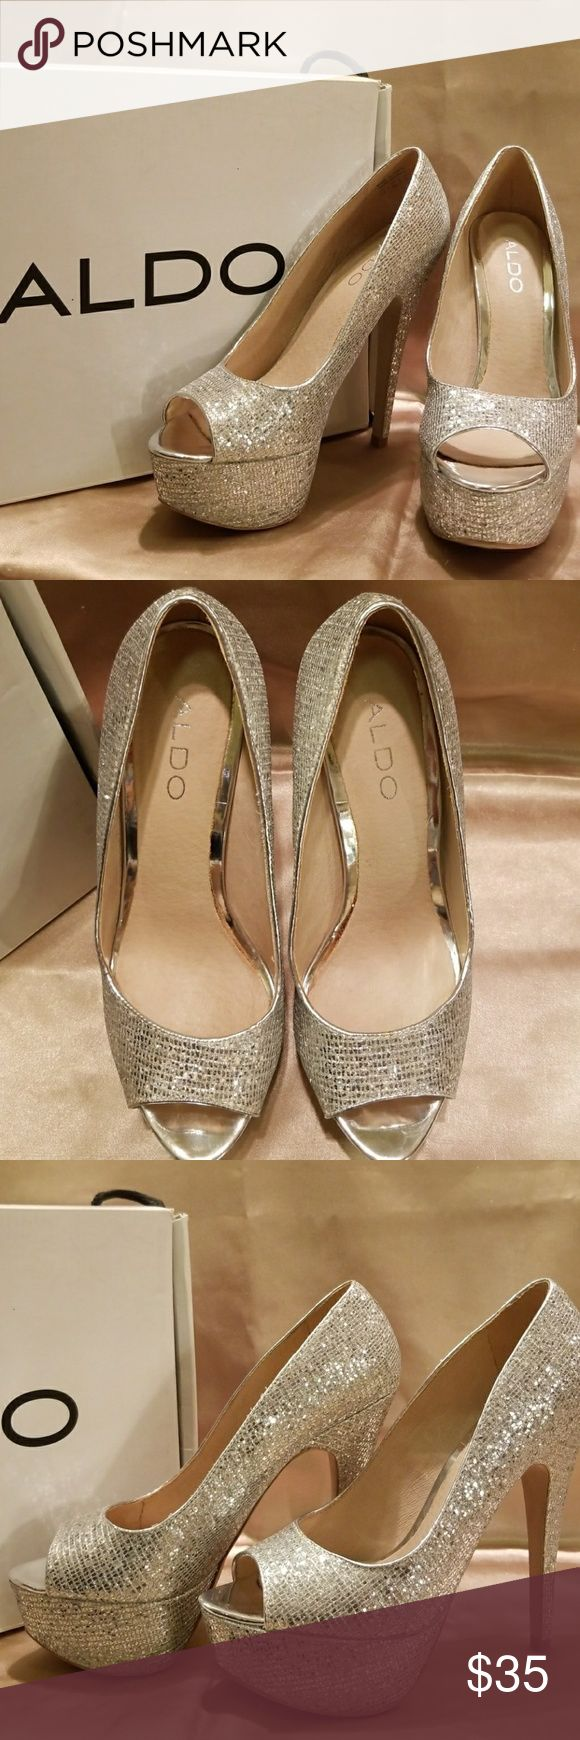 """Aldo Berthina Silver Peep Toe heels (7.5) Stunning Silver Glitter peep-toe 5"""" heels. Worn out twice and in great condition. Has normal wear and if you look up close you can see some glitter has rubbed off. Beautiful shoes I hate to sell that are boxed and taking up space in my closet. Waiting for someone else to love and enjoy them. ❤👠 Aldo Shoes Heels"""